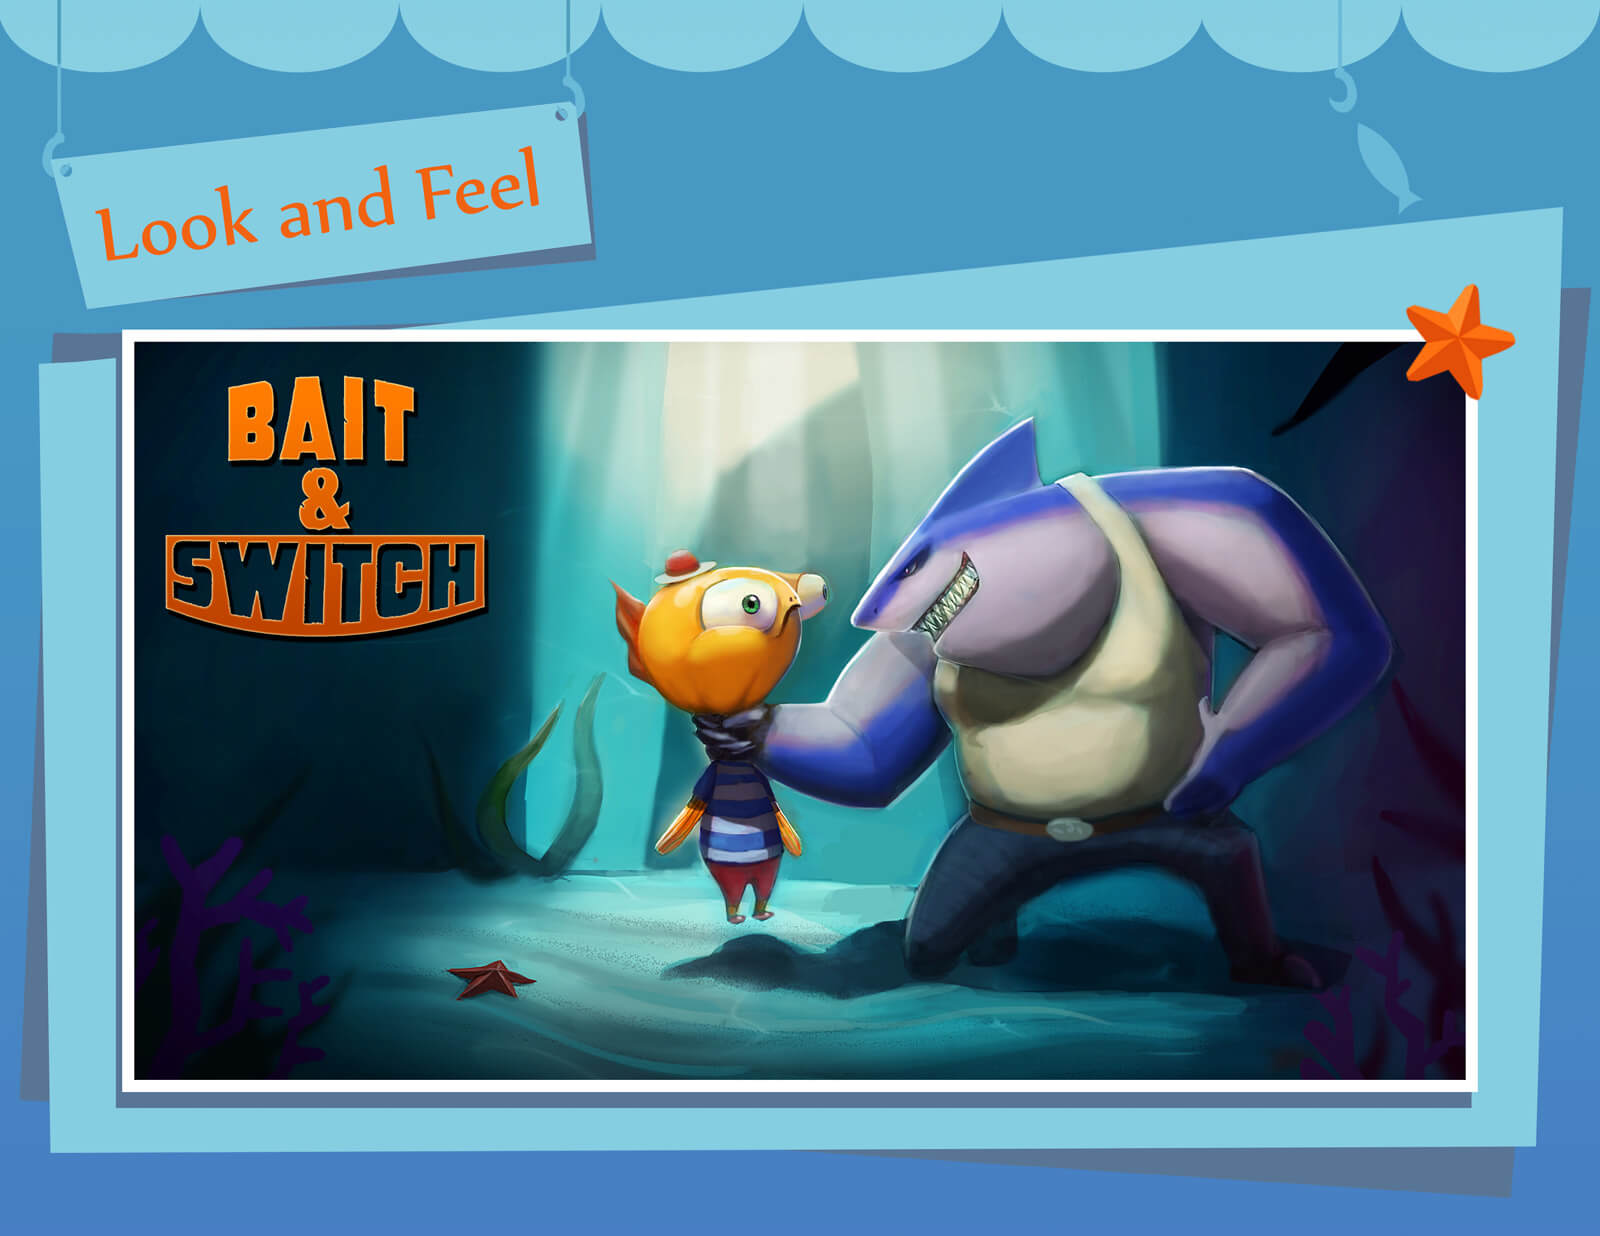 Look and Feel presentation slide for film Bait & Switch depicting a large shark choking a small orange fish by the neck